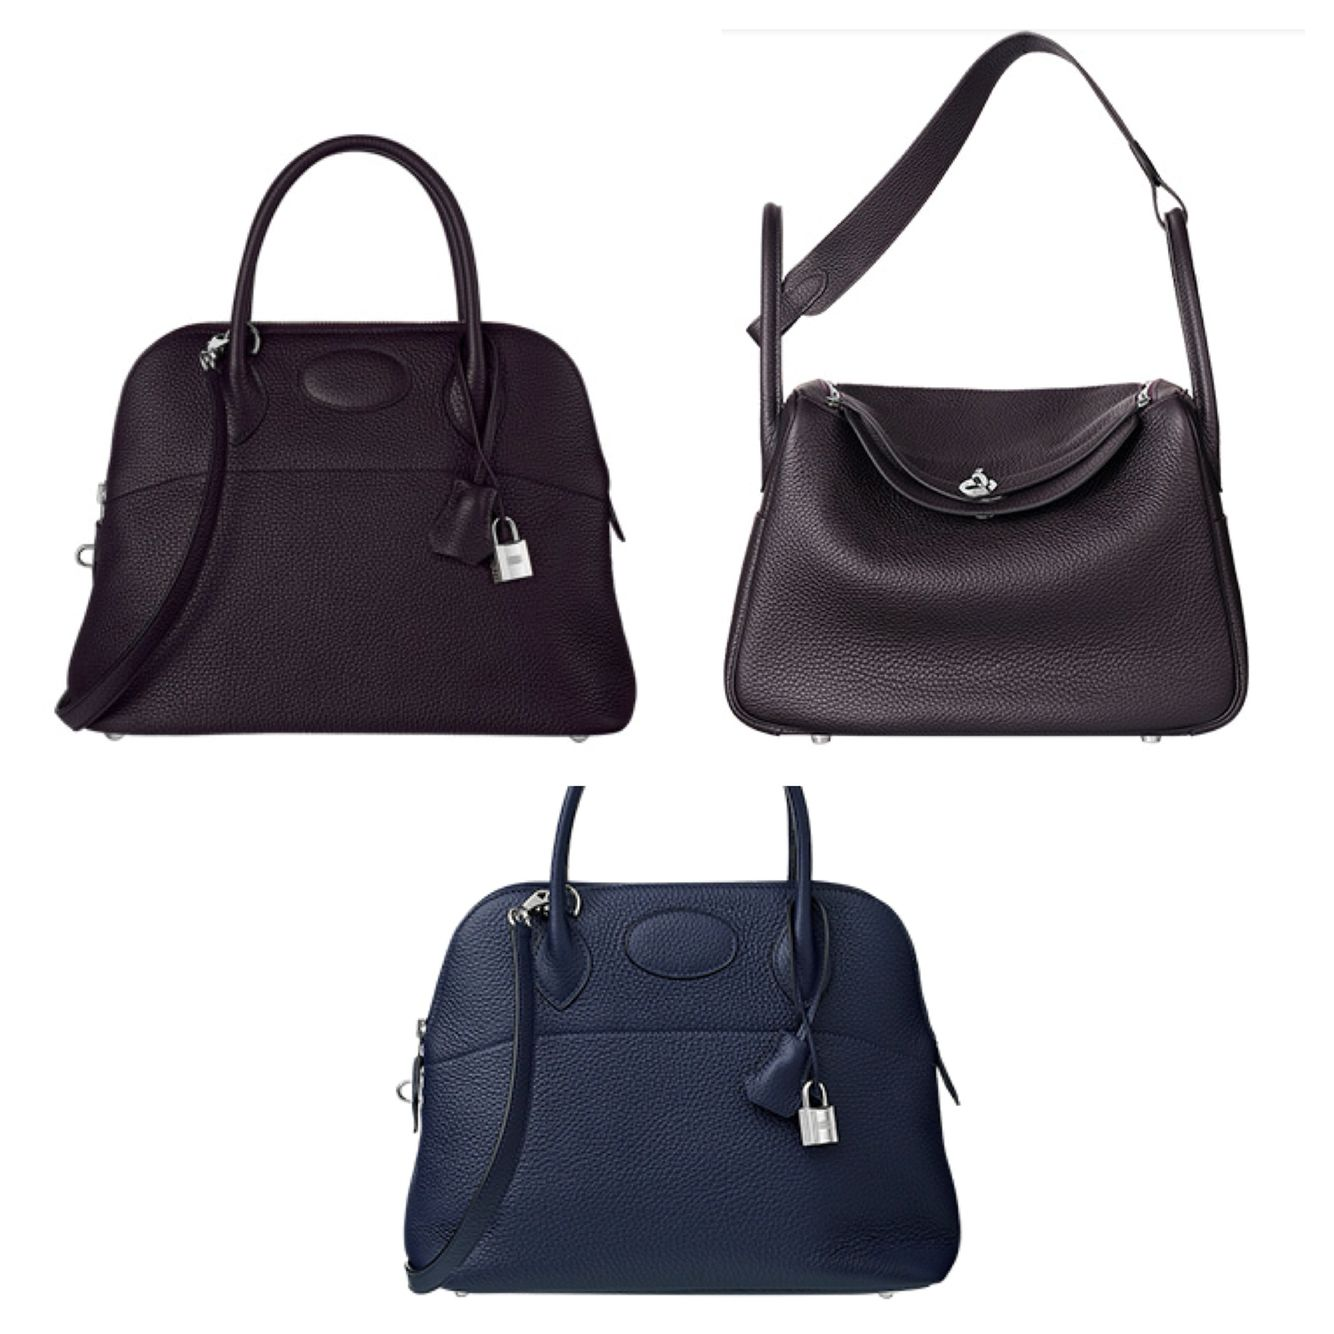 ba170f980ec1 4e065 ea6d6  purchase beautiful bag colours by hermes night blue and dark  plum eb6f0 7cad2